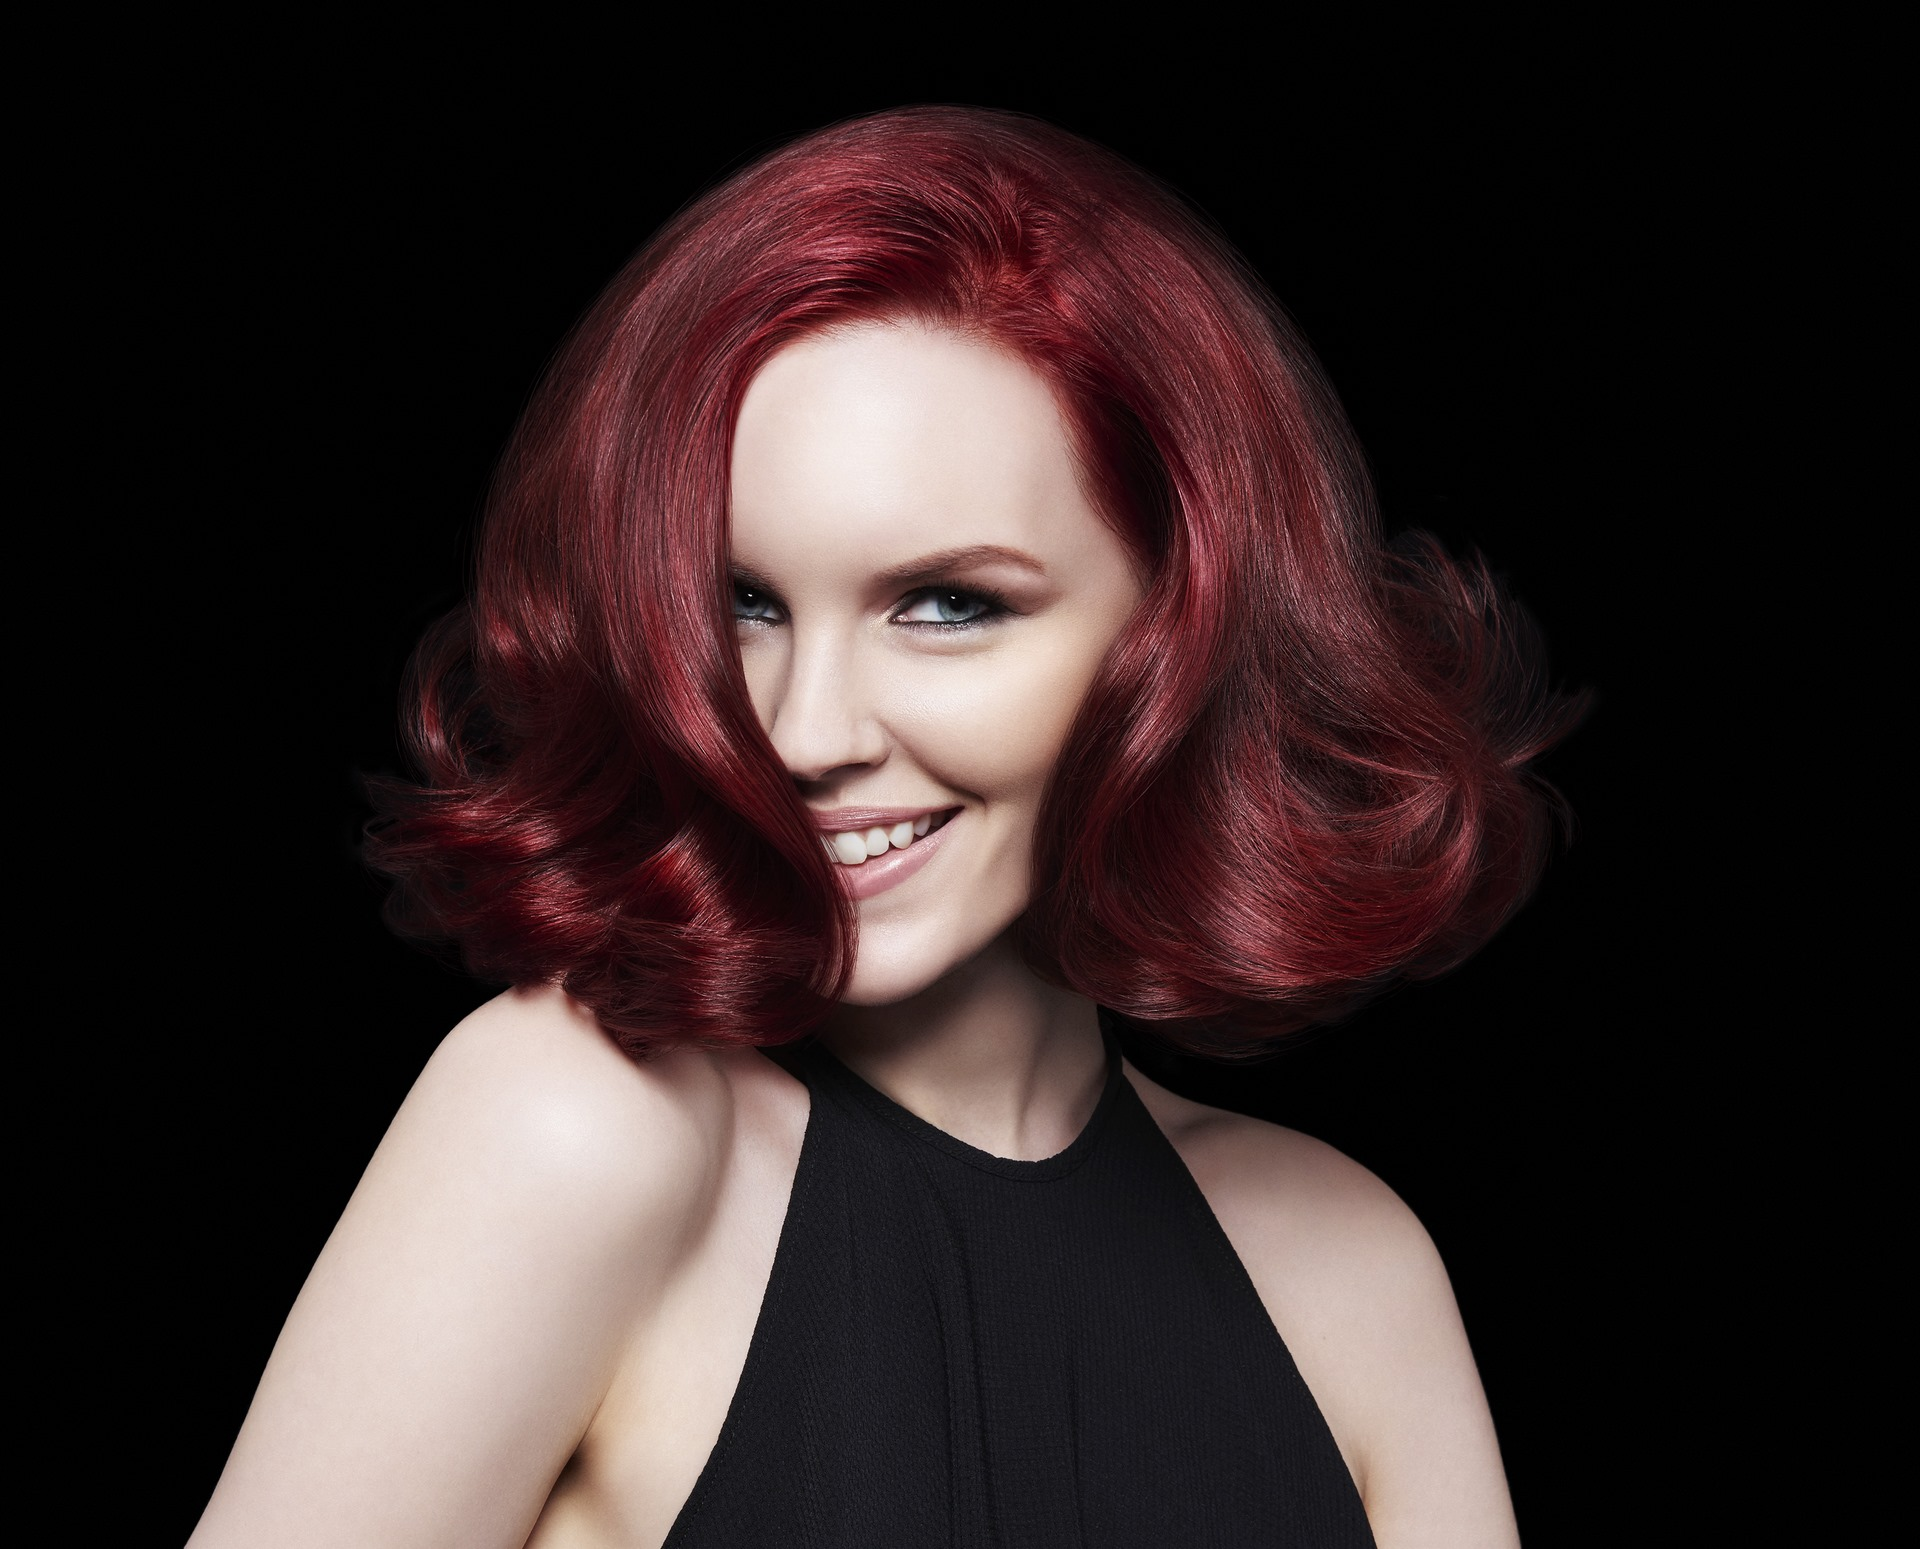 Joico-Category-Model-S&F-CE-CI-Liz_web